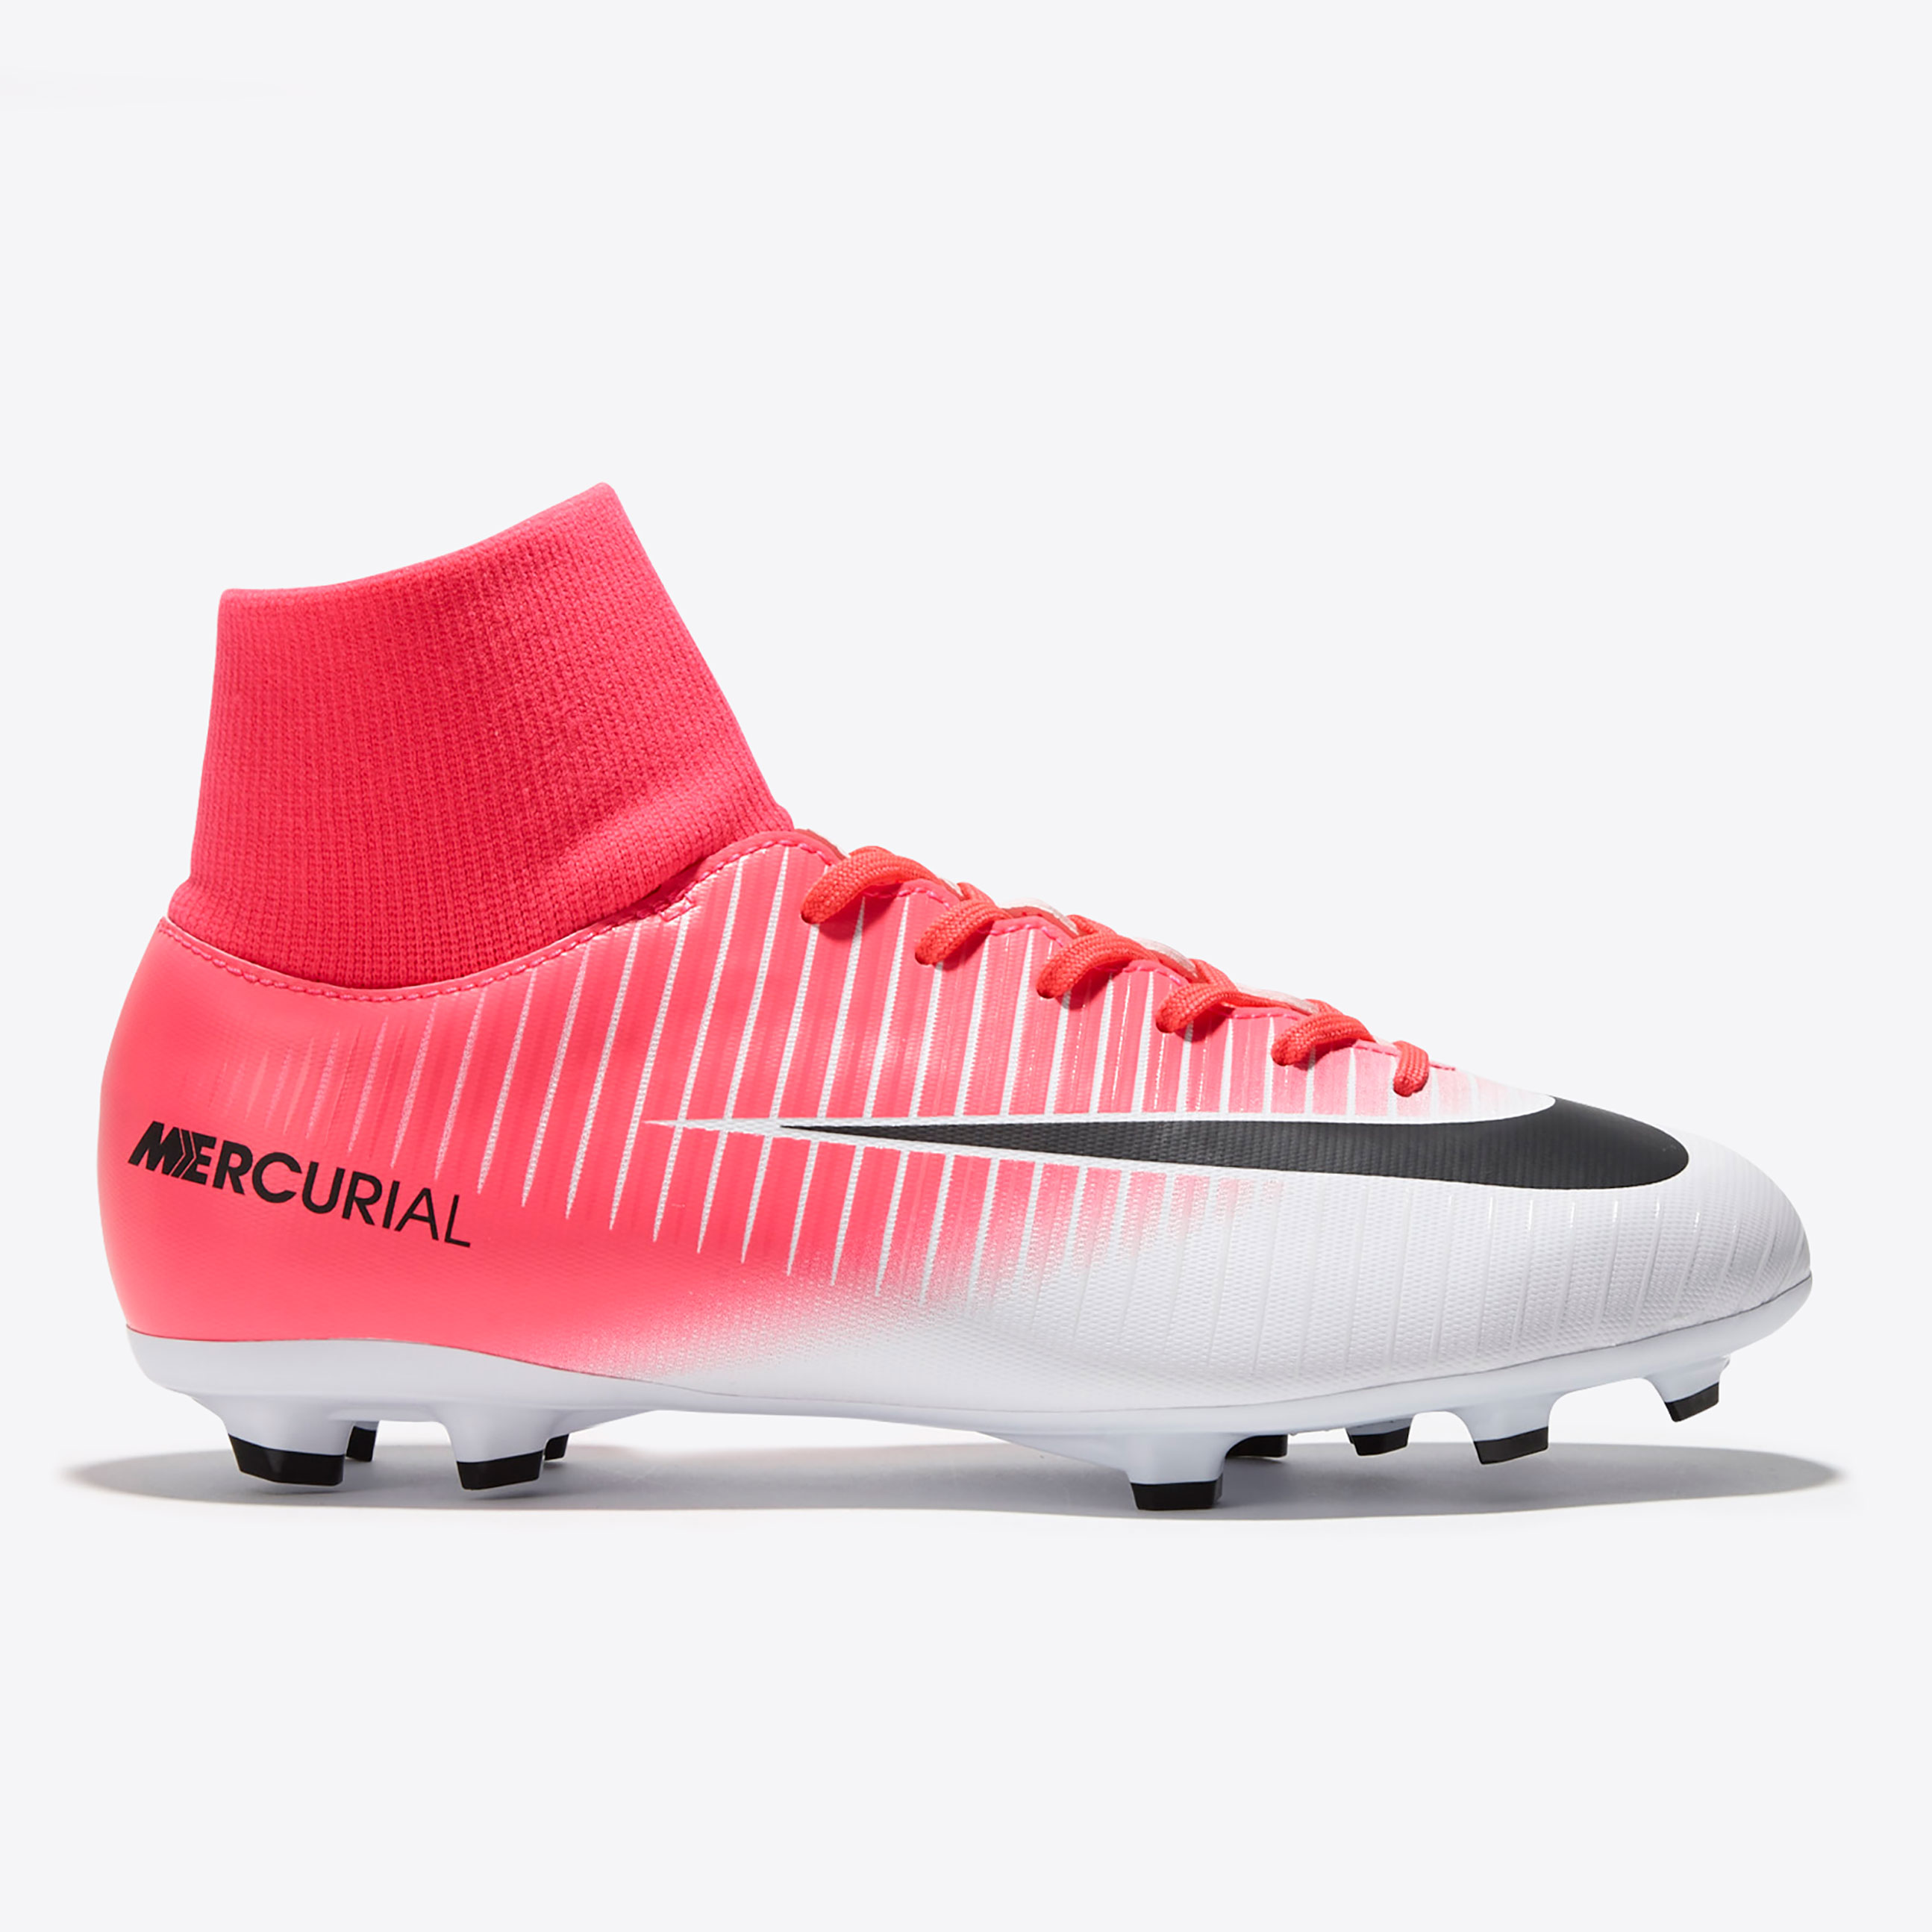 Nike Mercurial Victory VI DF Firm Ground Football Boots - Racer Pink/B